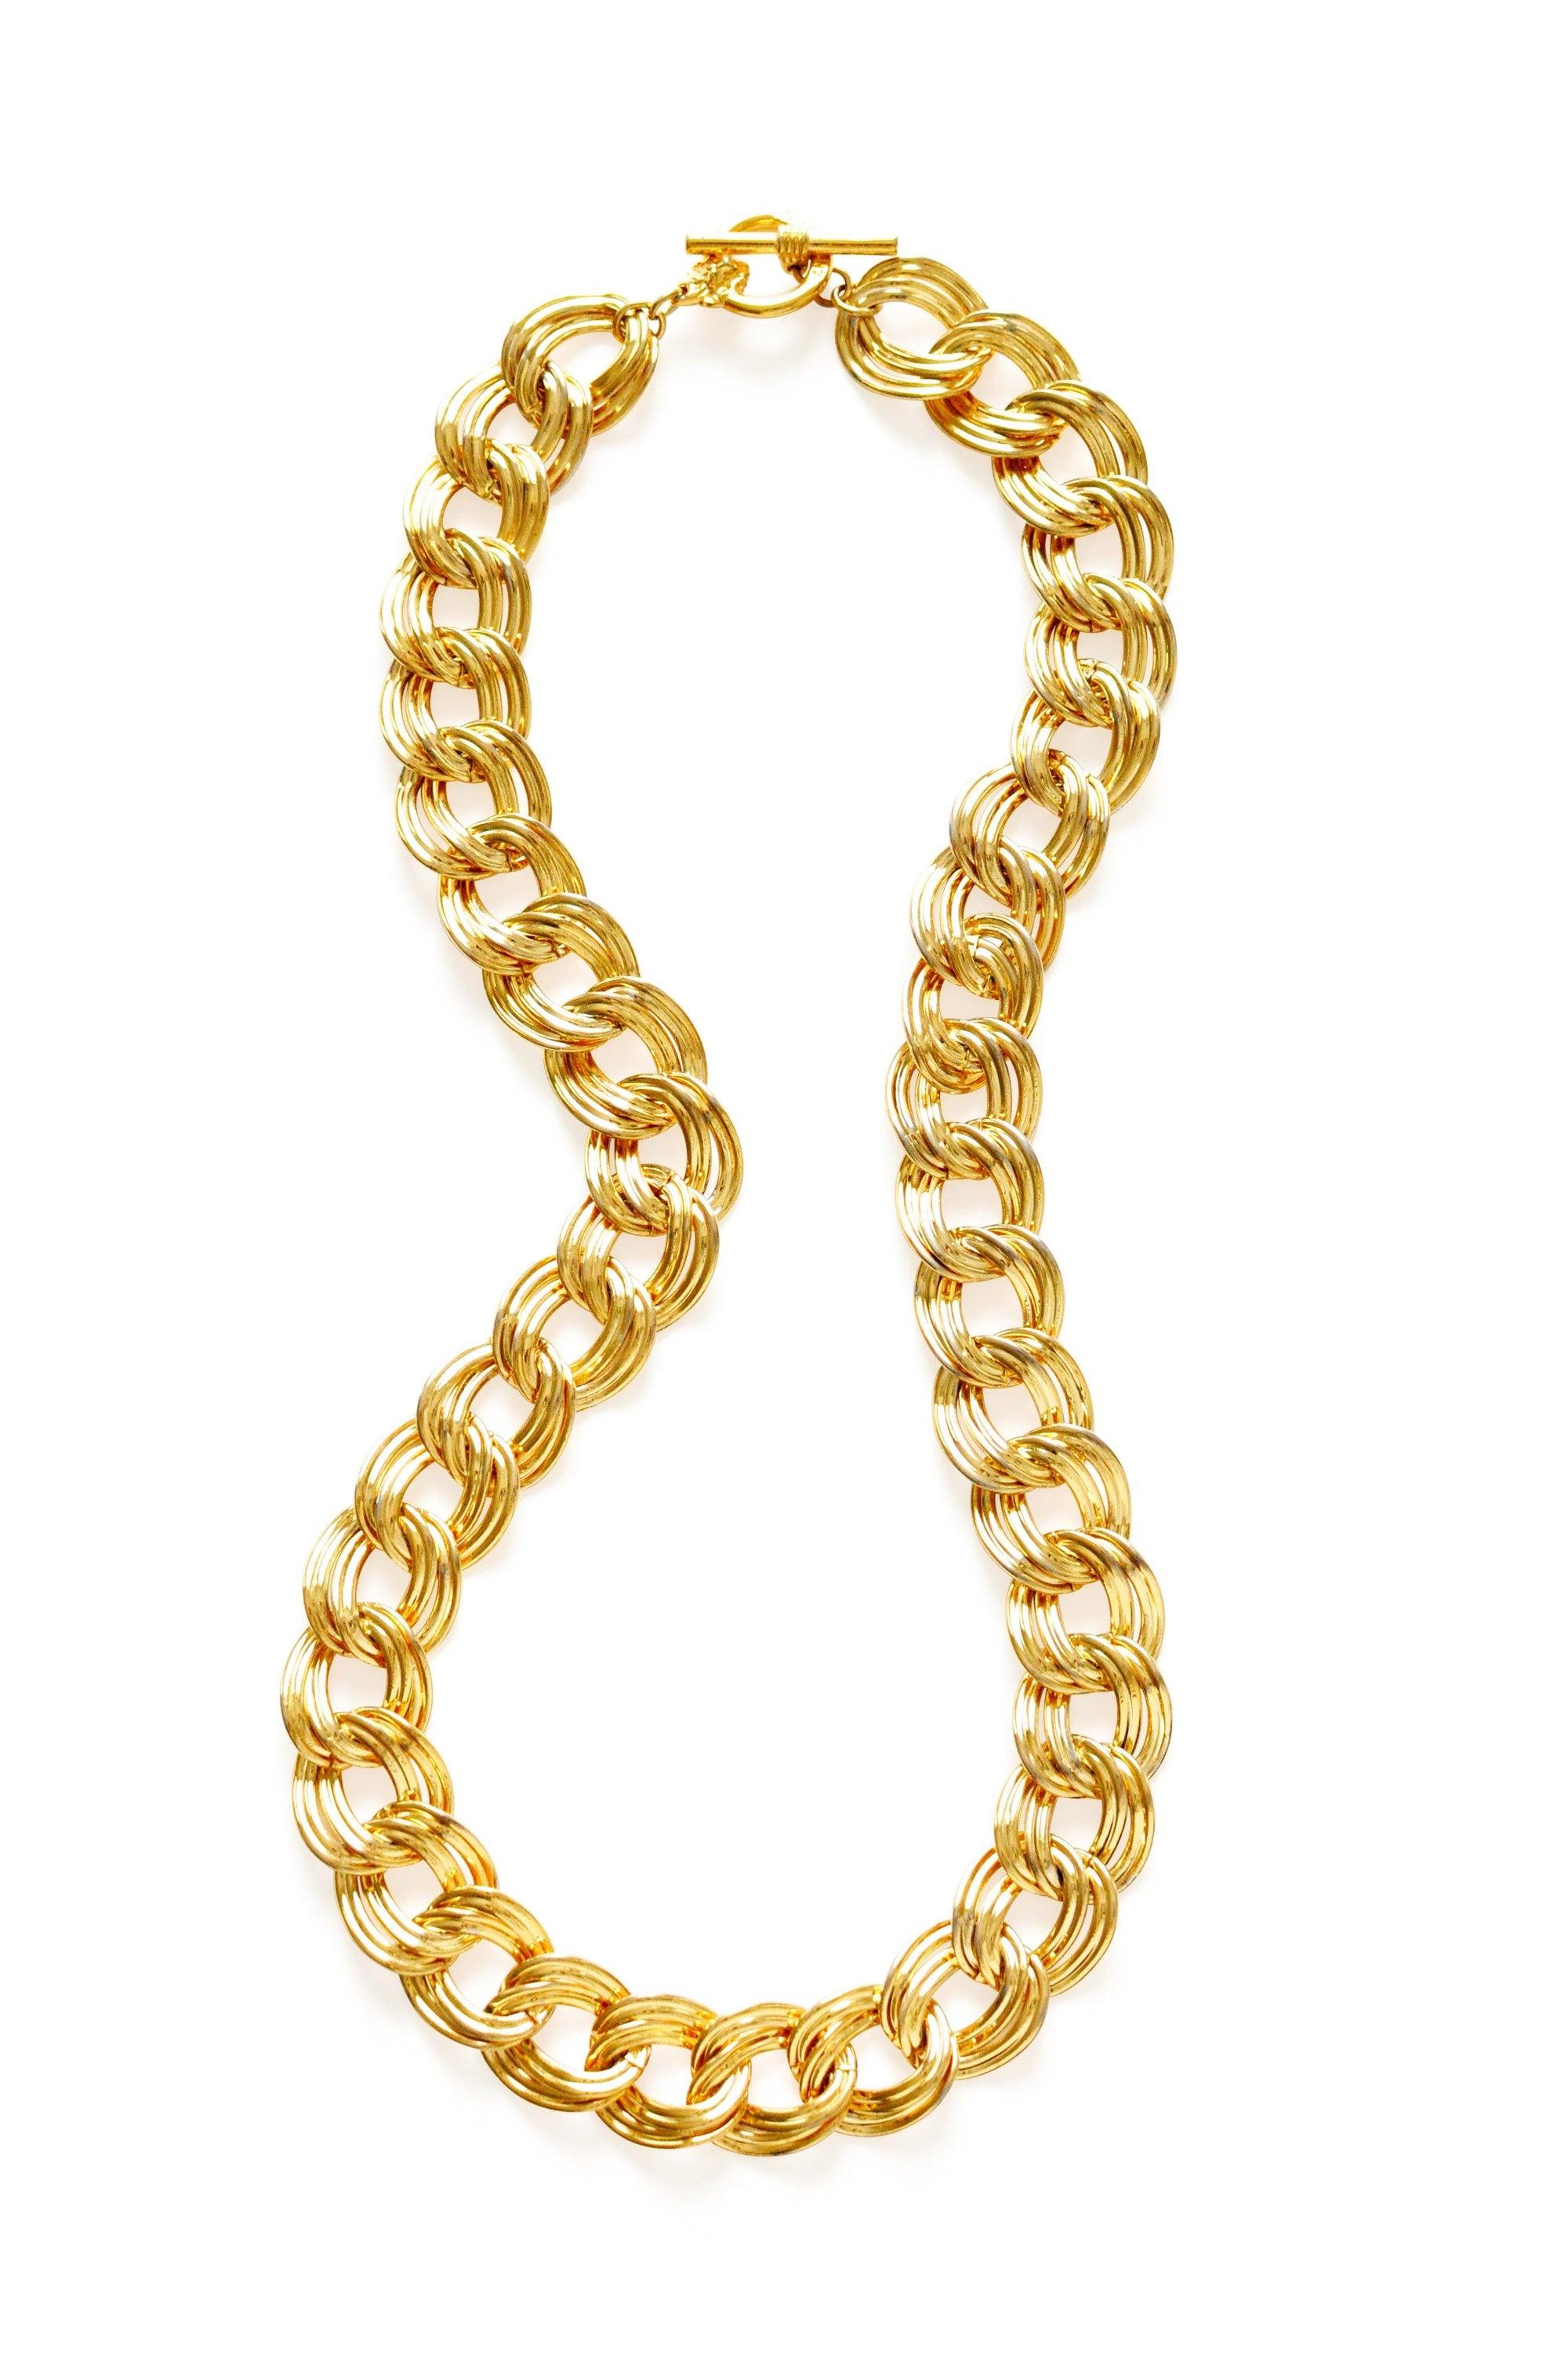 Statement Chain Necklace From Sweet & Spark